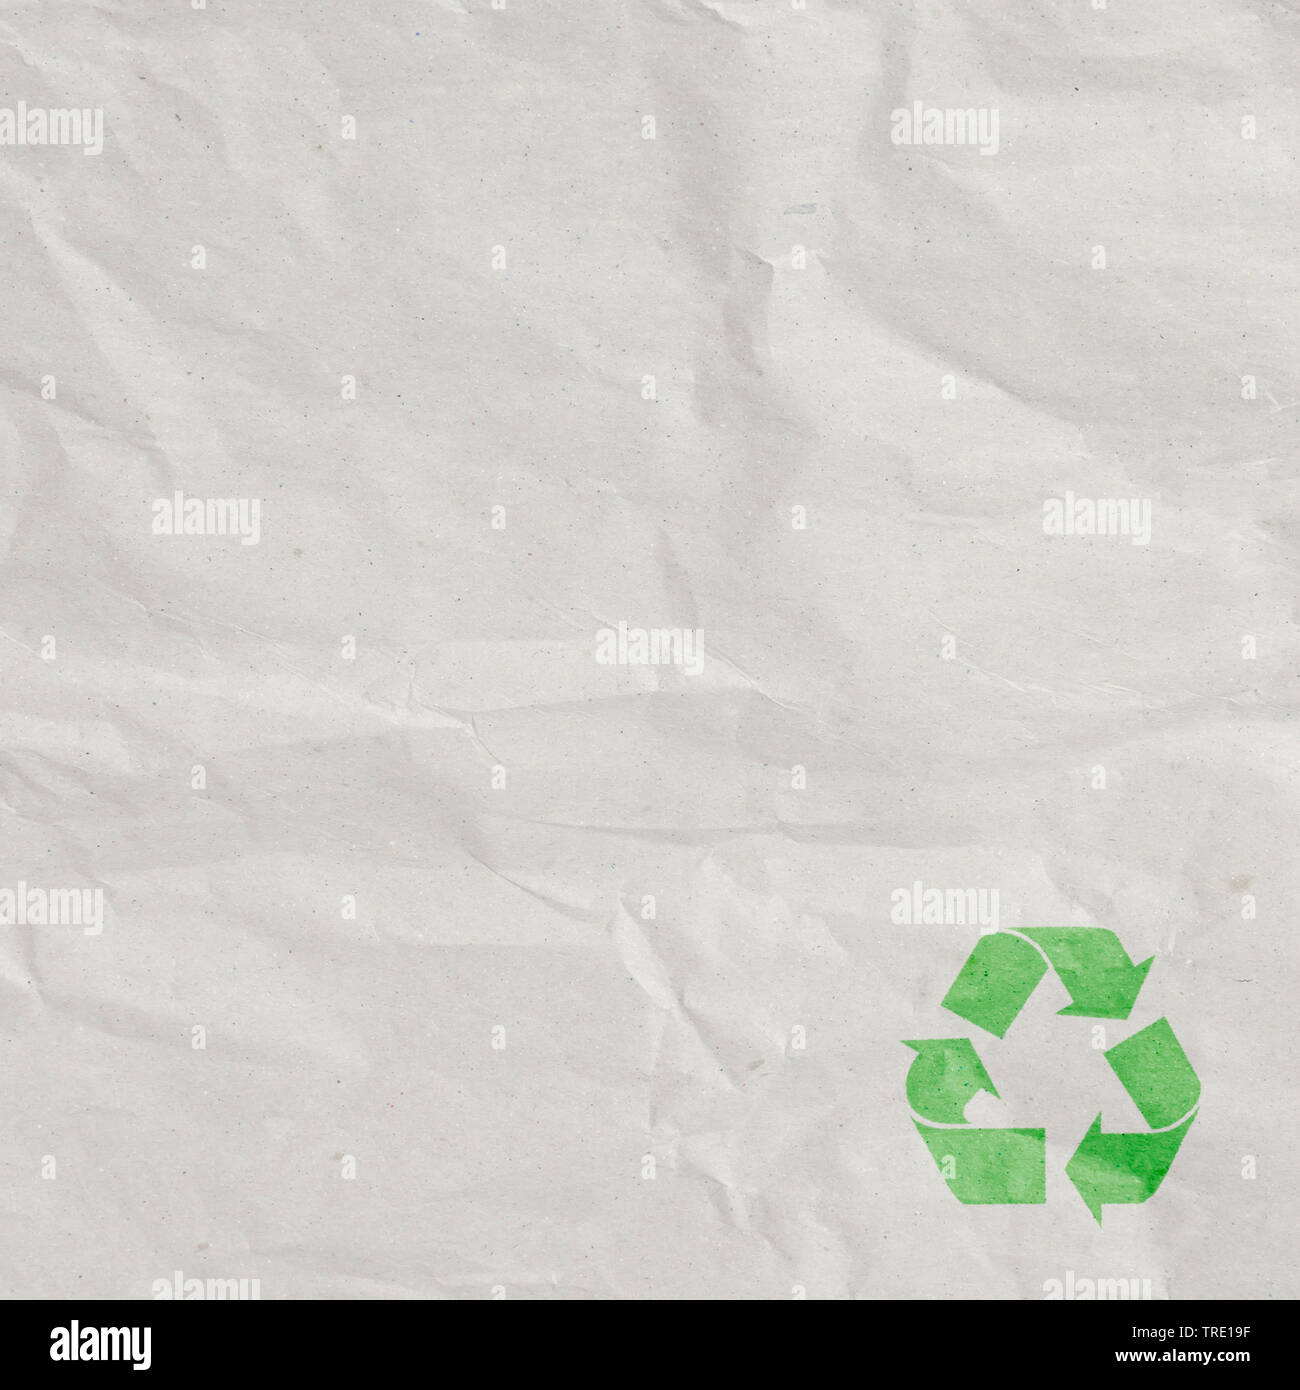 gebrauchtes Packpapier mit Recycling-Symbol | packing paper with recycling symbol | BLWS514341.jpg [ (c) blickwinkel/McPHOTO/M. Gann Tel. +49 (0)2302- - Stock Image